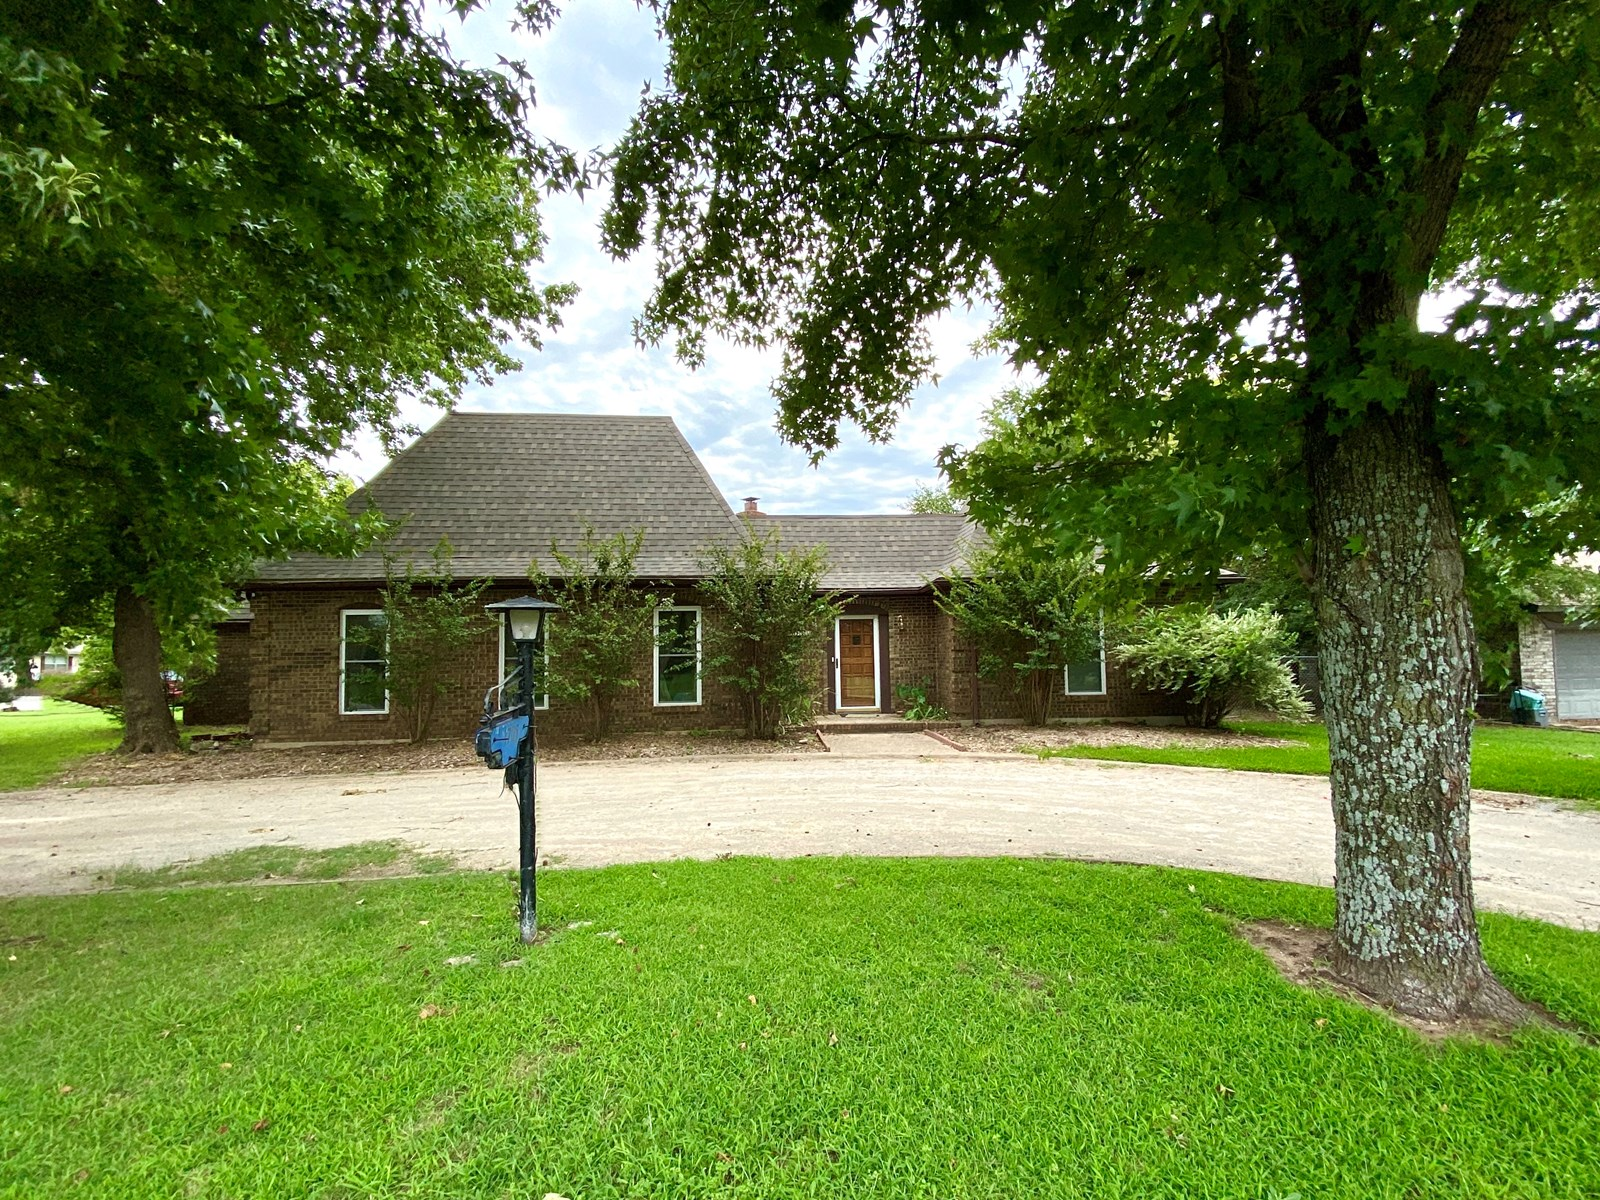 OKLAHOMA HOME FOR SALE CLOSE TO CASINO, SPA, RECREATION